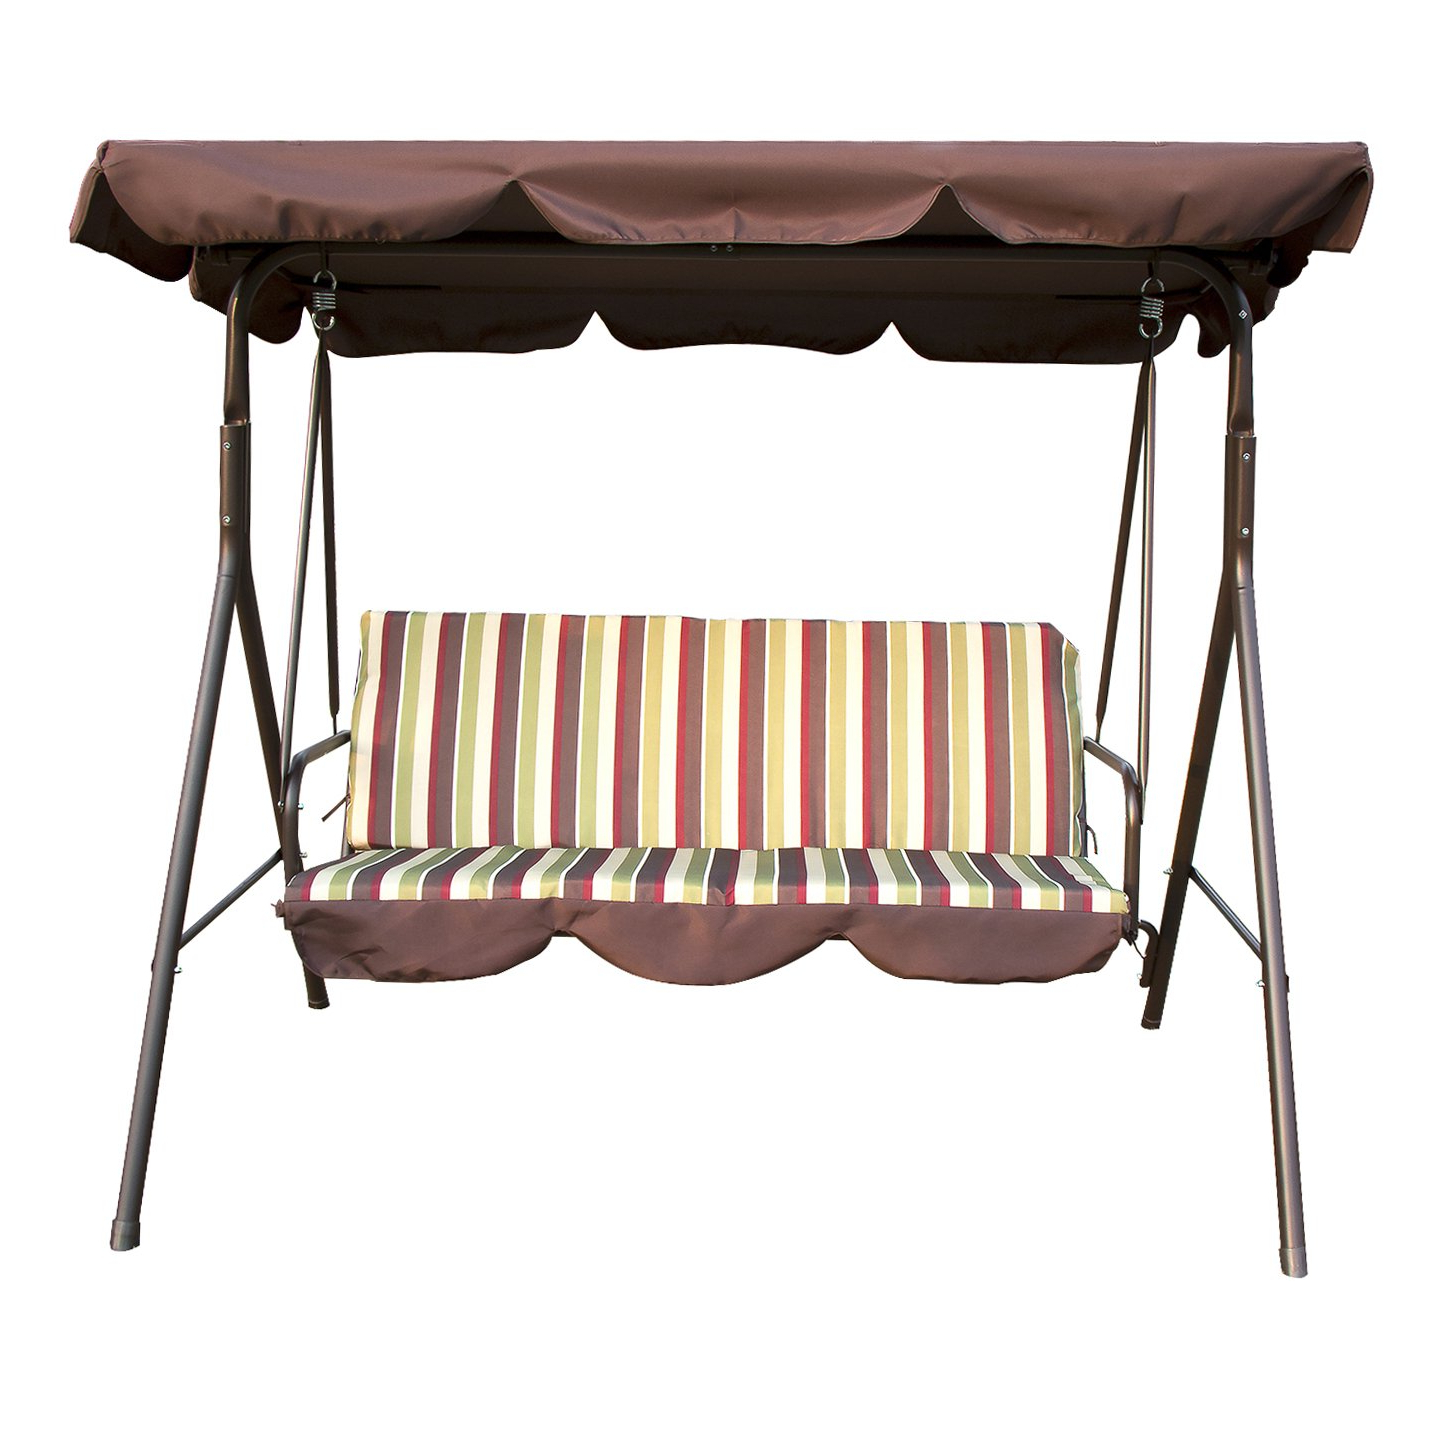 Trendy Top 10 Best Porch Swings With Stands In 2019 – Brain And Mouth Regarding Canopy Patio Porch Swing With Stand (View 11 of 25)